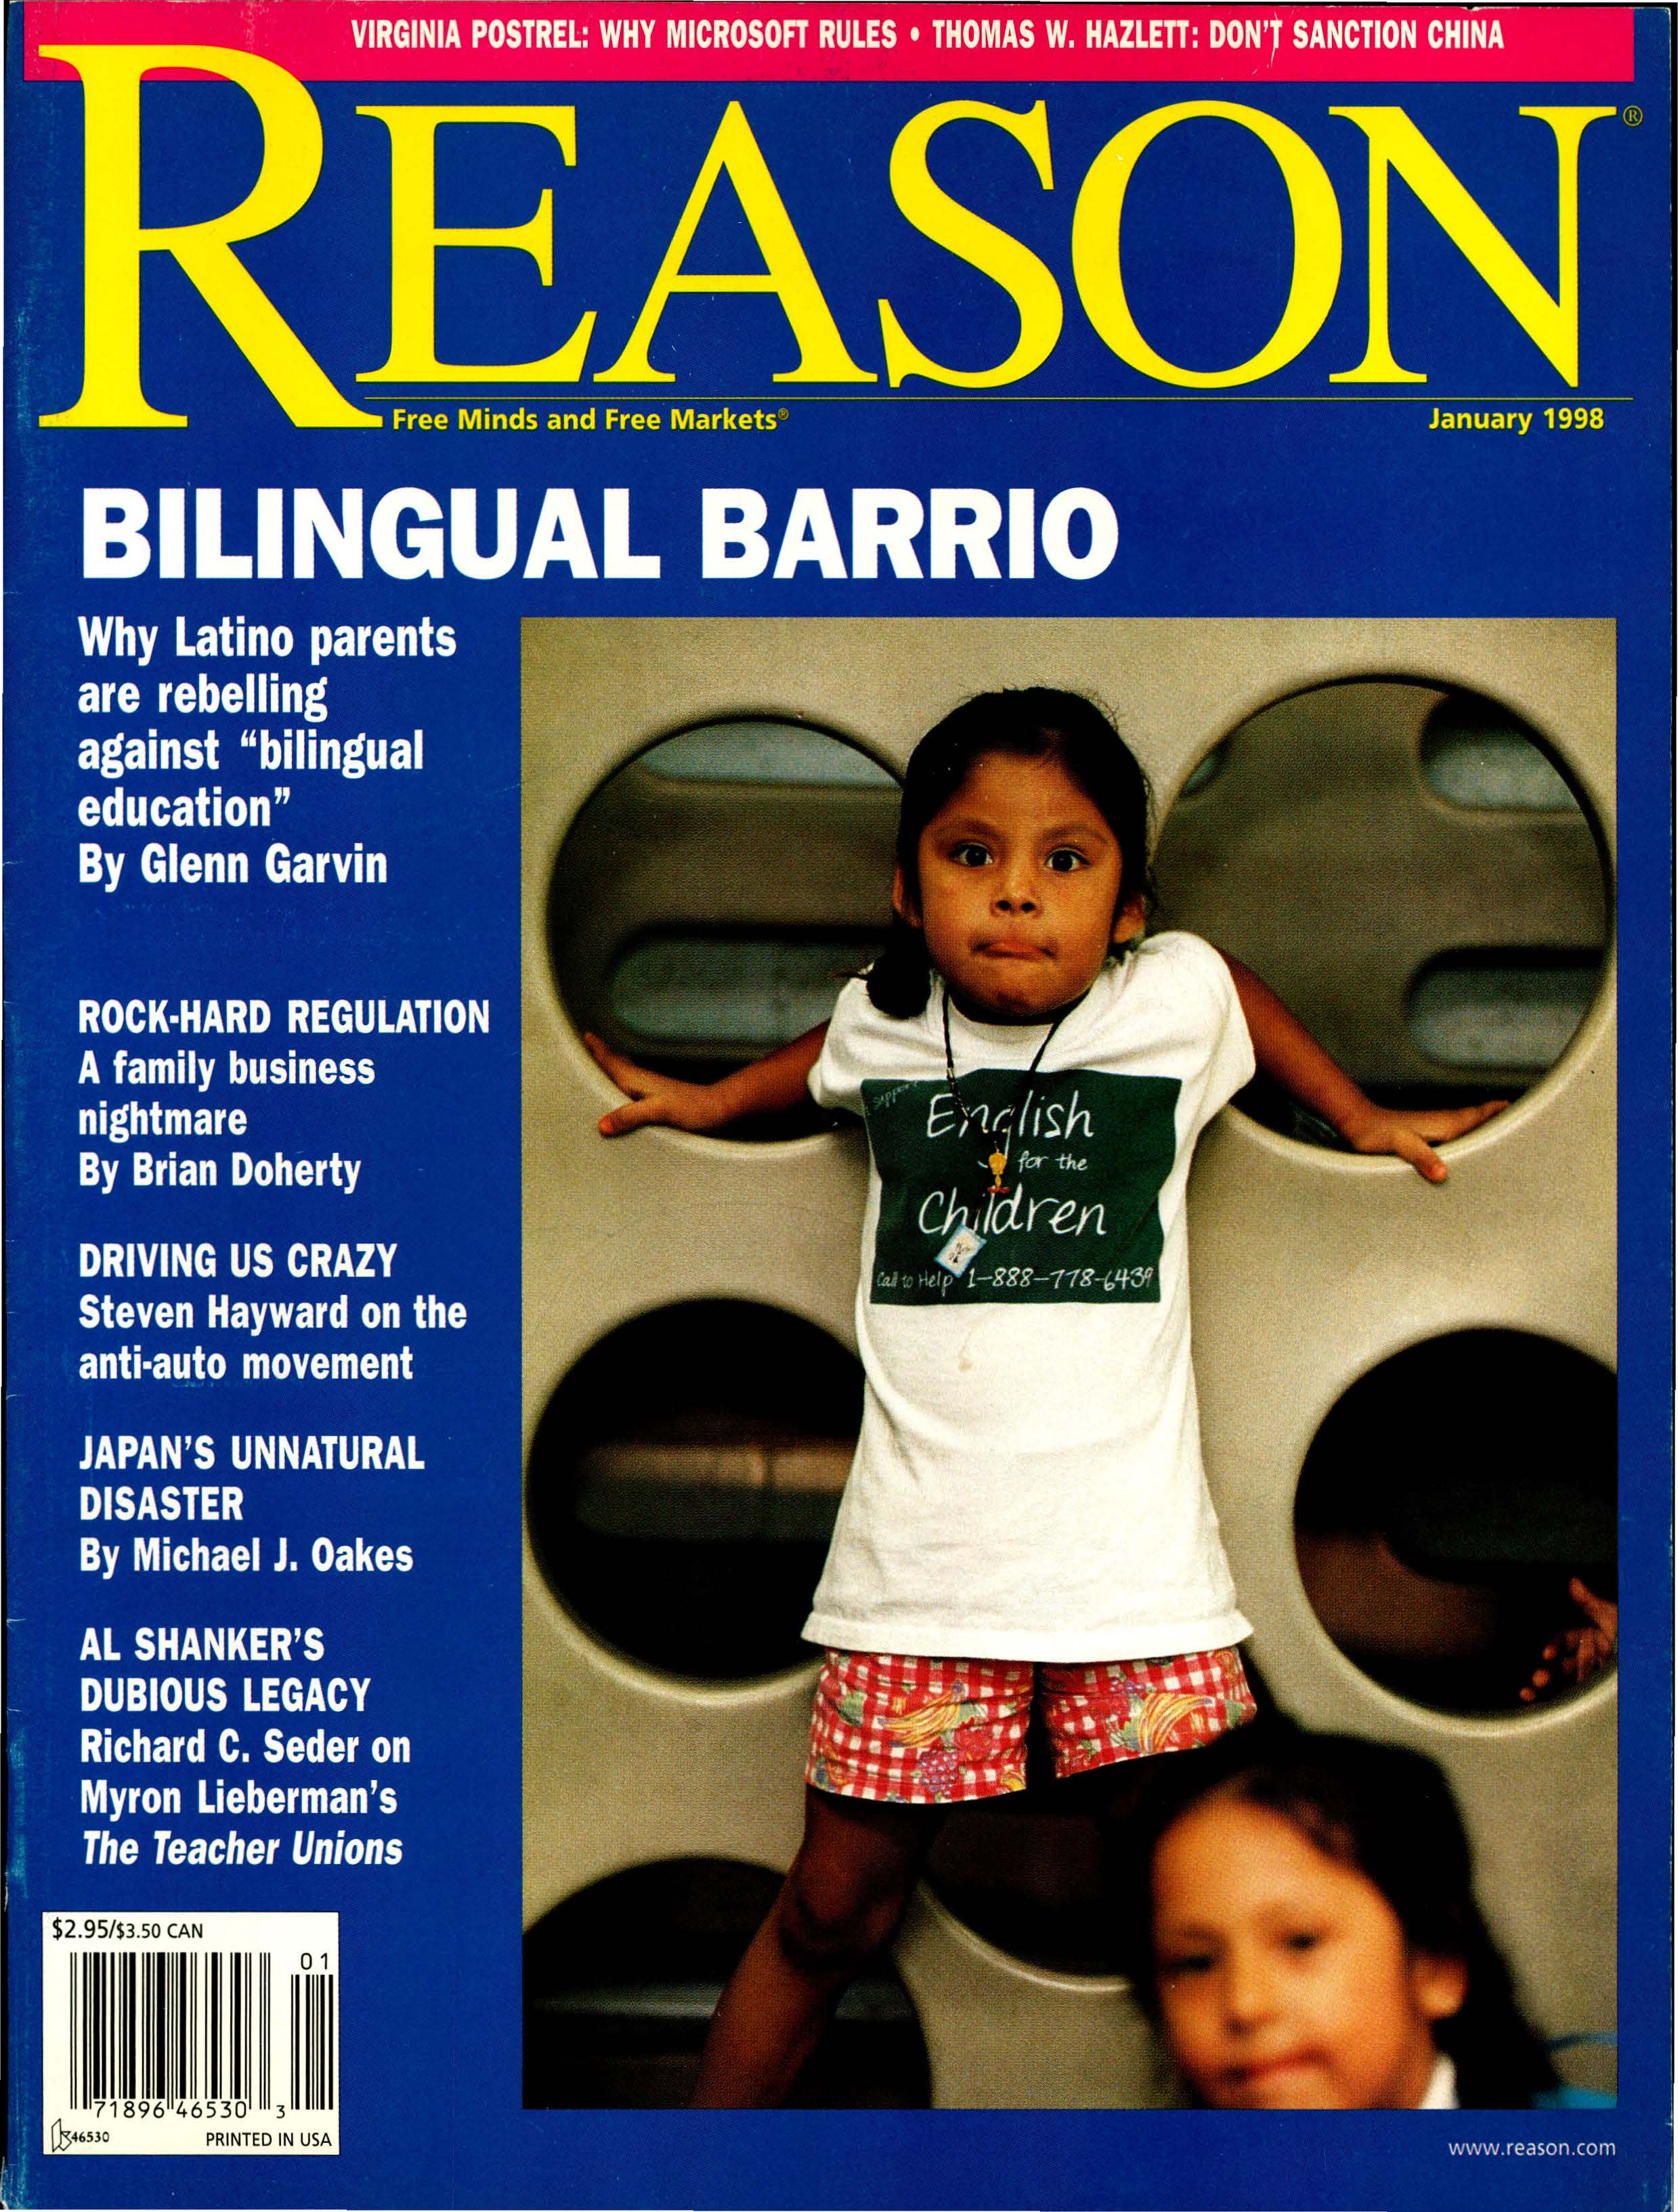 Reason Magazine, January 1998 cover image